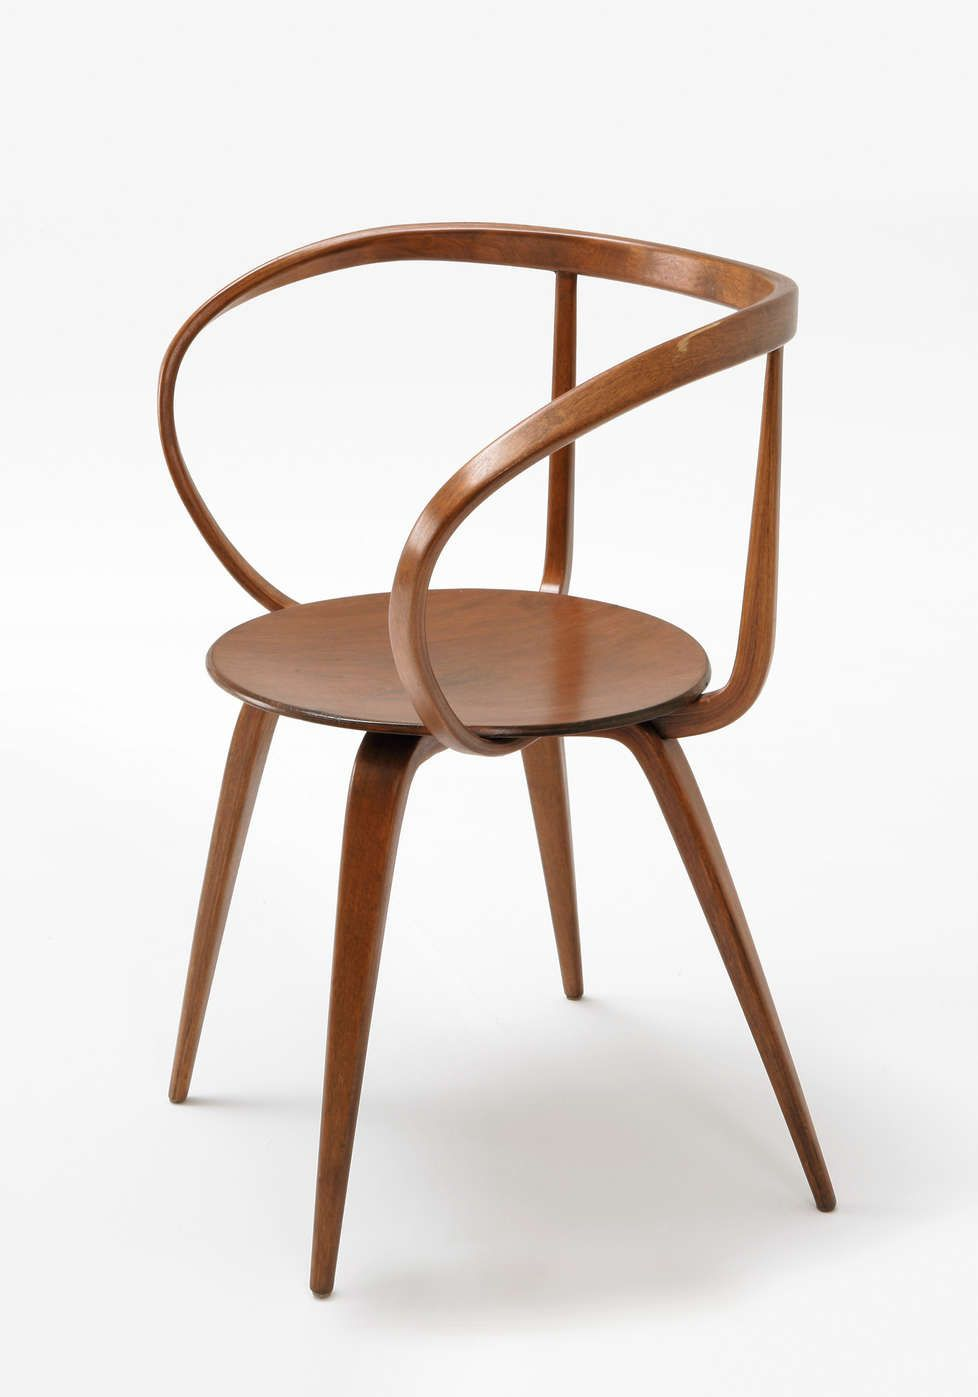 George Nelson   Pretzel Chair, 1952   Laminated Bentwood   Side